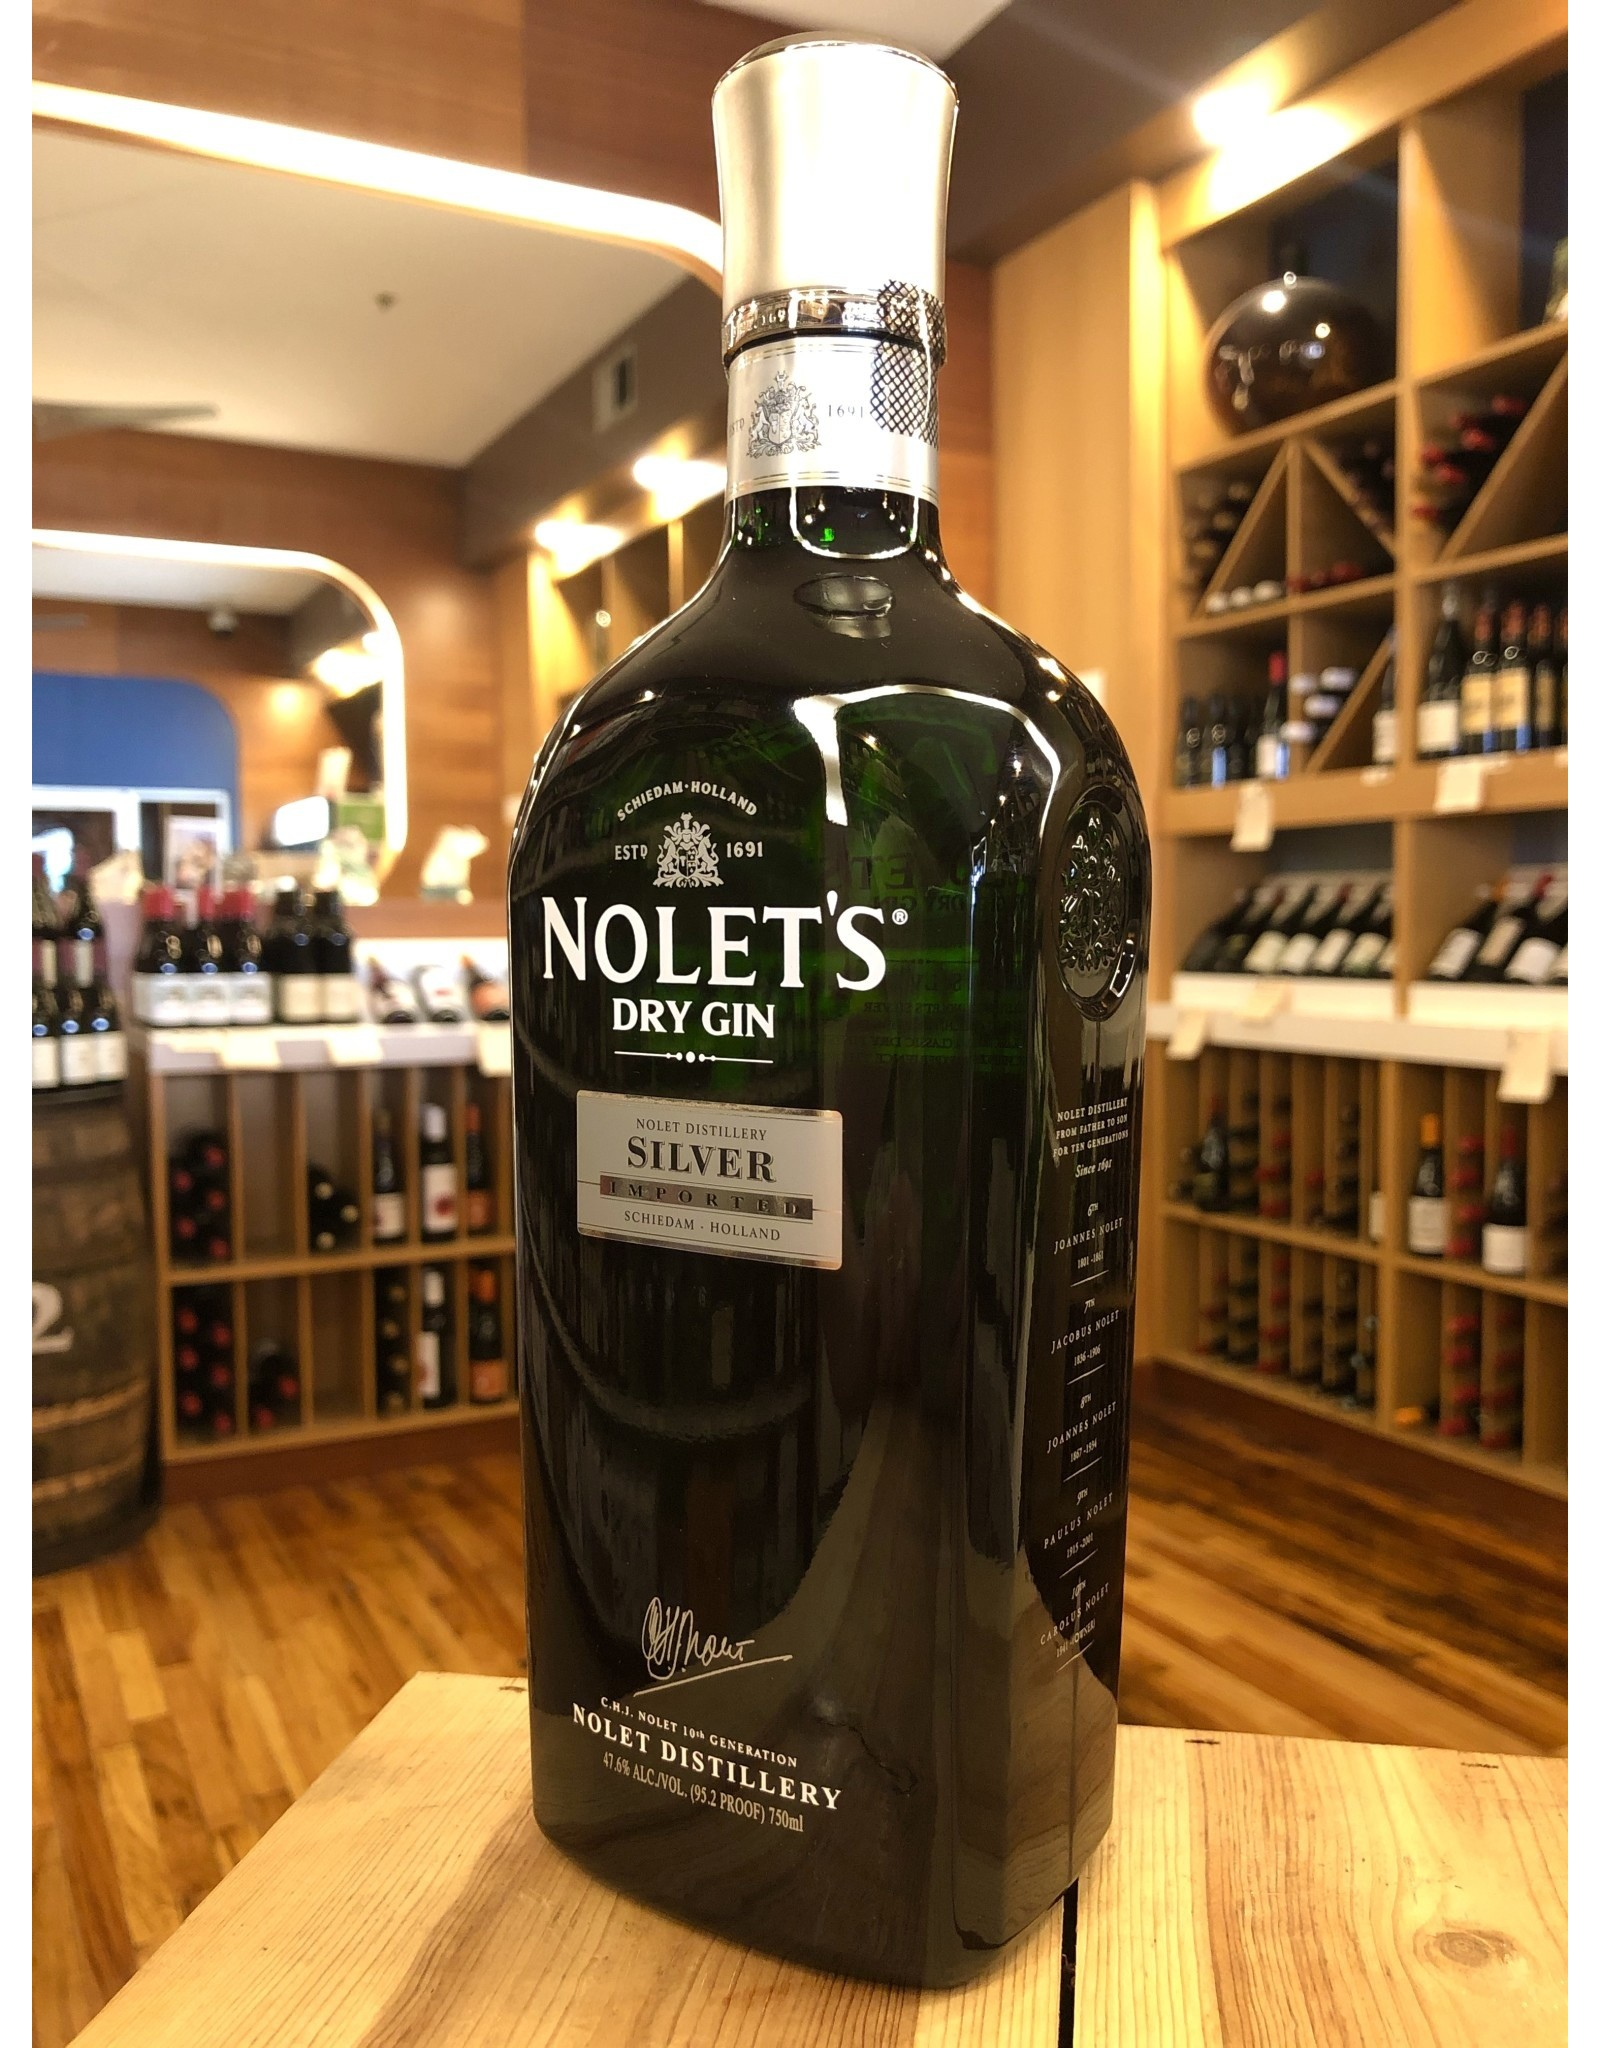 Nolet's Dry Gin & Glass Gift Set - 750 ML